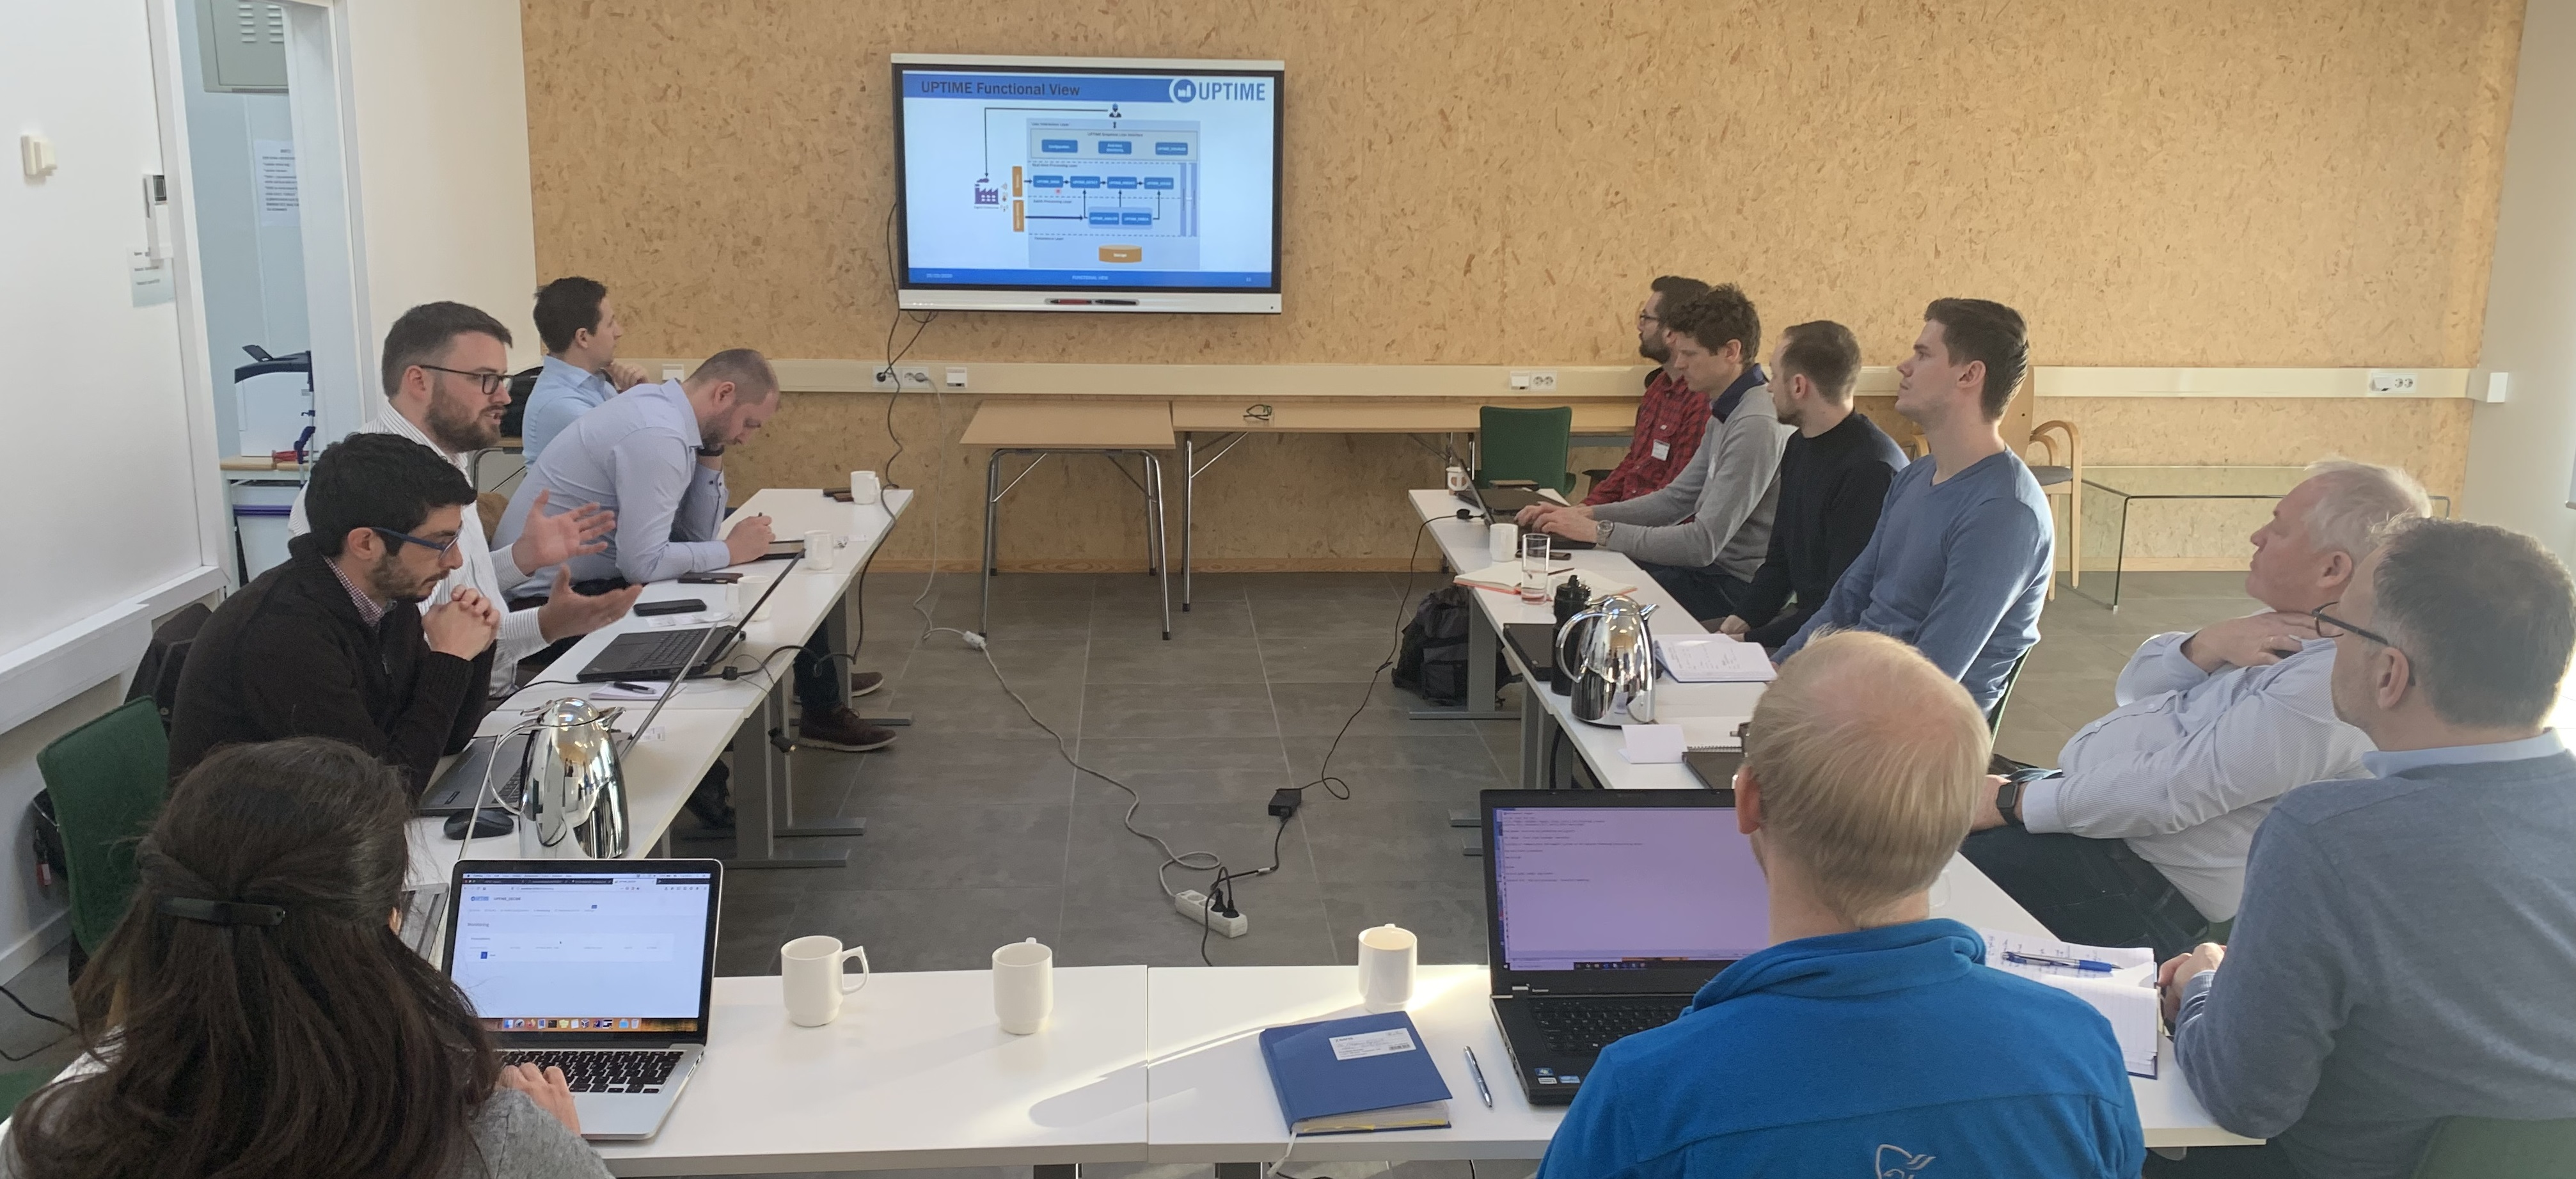 UPTIME Workshop_Sperre_Norway